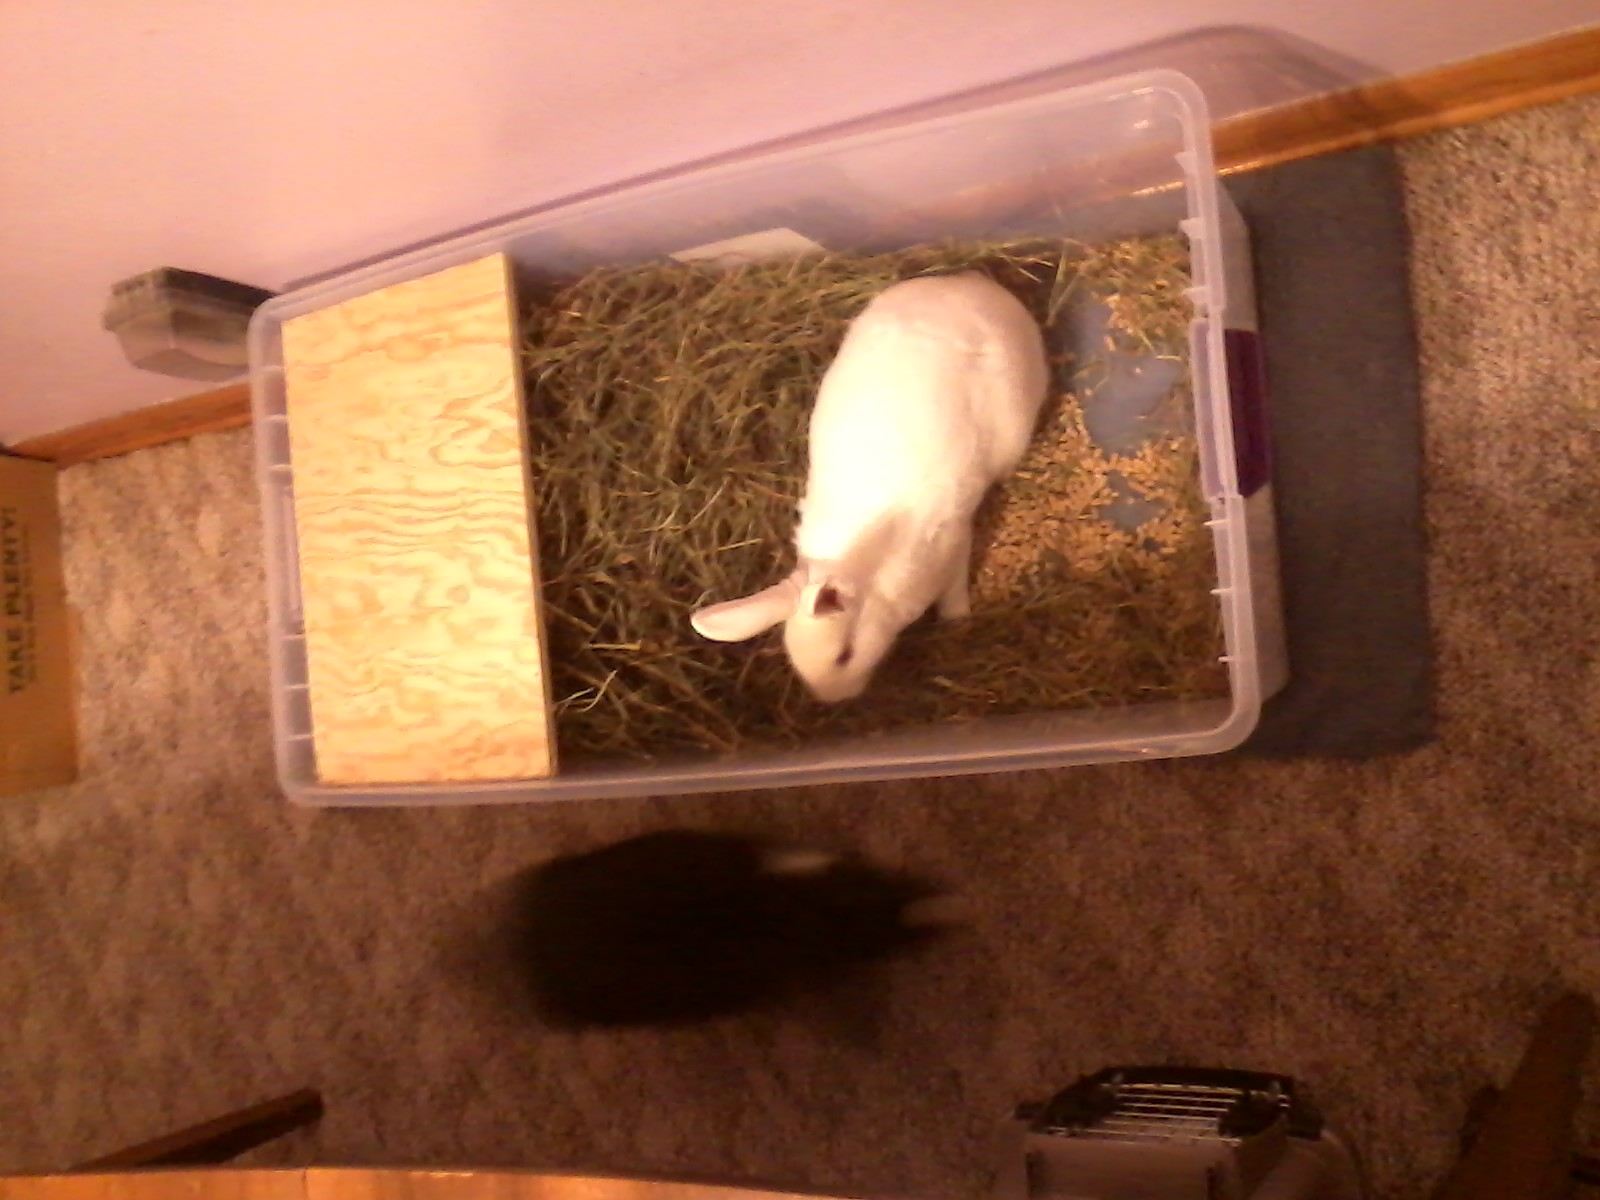 behavior  My rabbit is digging at the carpet in the